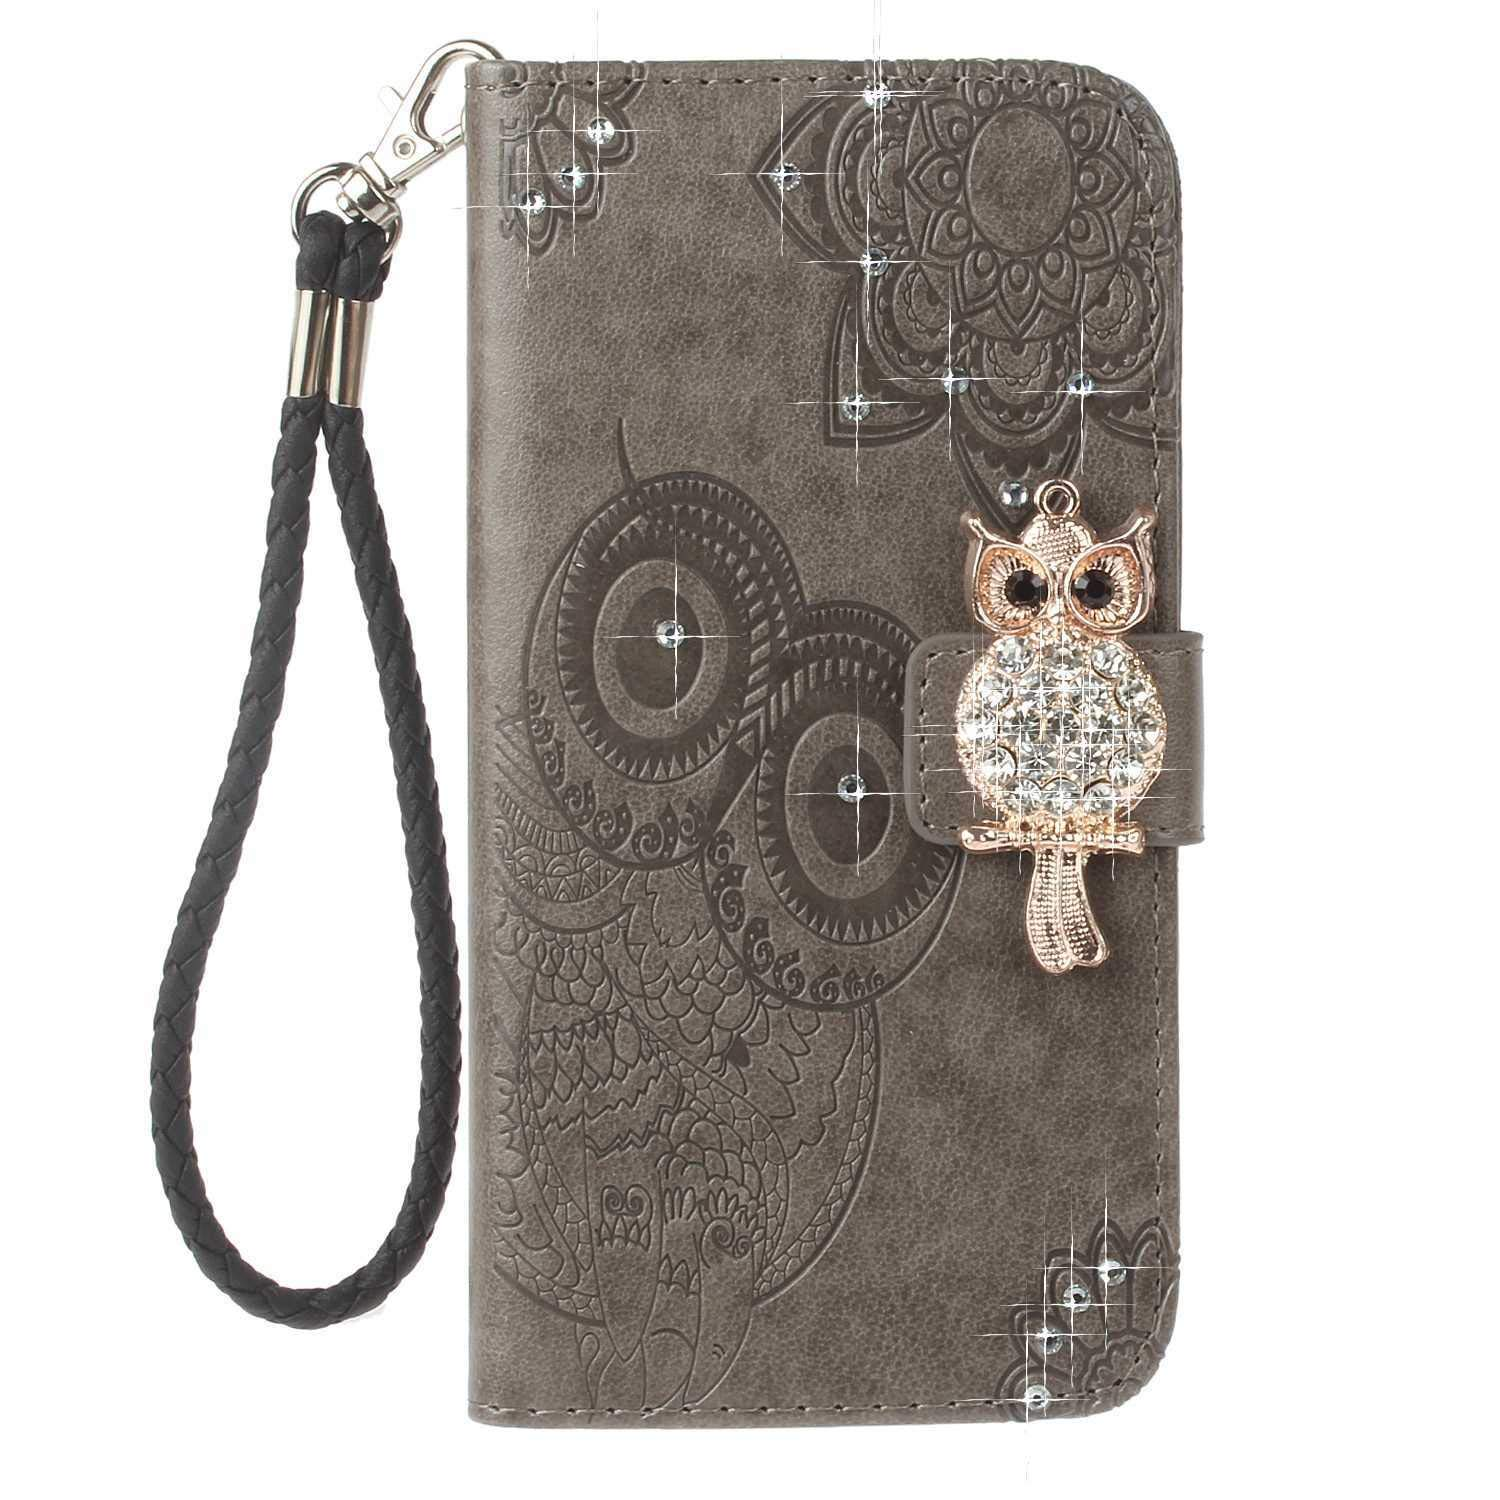 Bear Village Galaxy J3 2016 Case, Leather Case with Wrist Strap and Credit Card Slot, Owl Magnetic Closure Shockproof Cover for Samsung Galaxy J3 2016, Gray by Bear Village